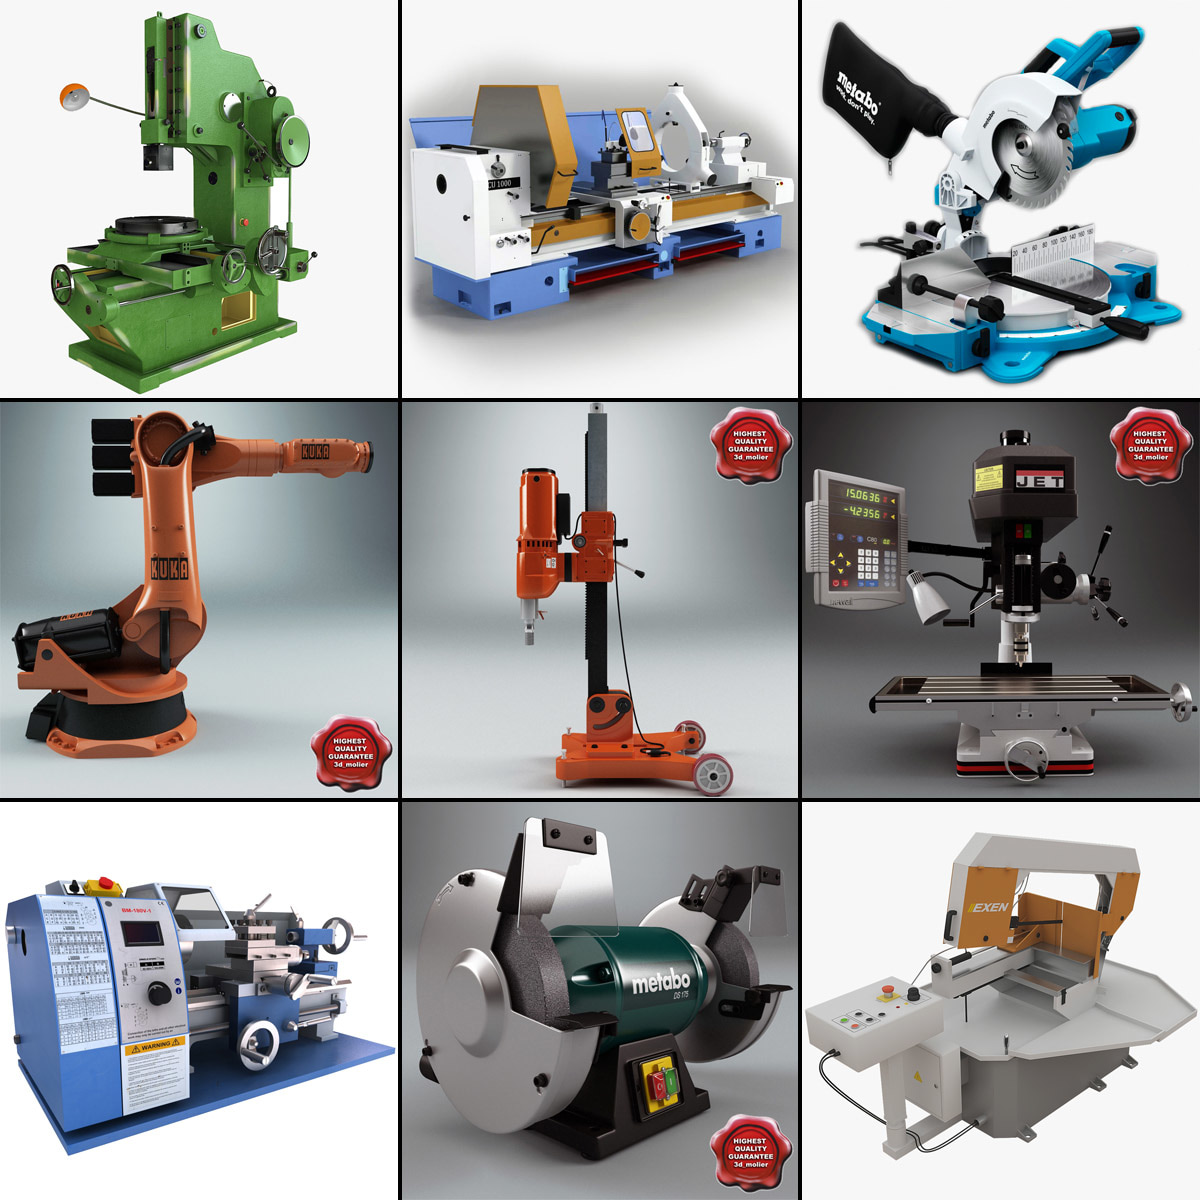 3d model of industrial machines v5